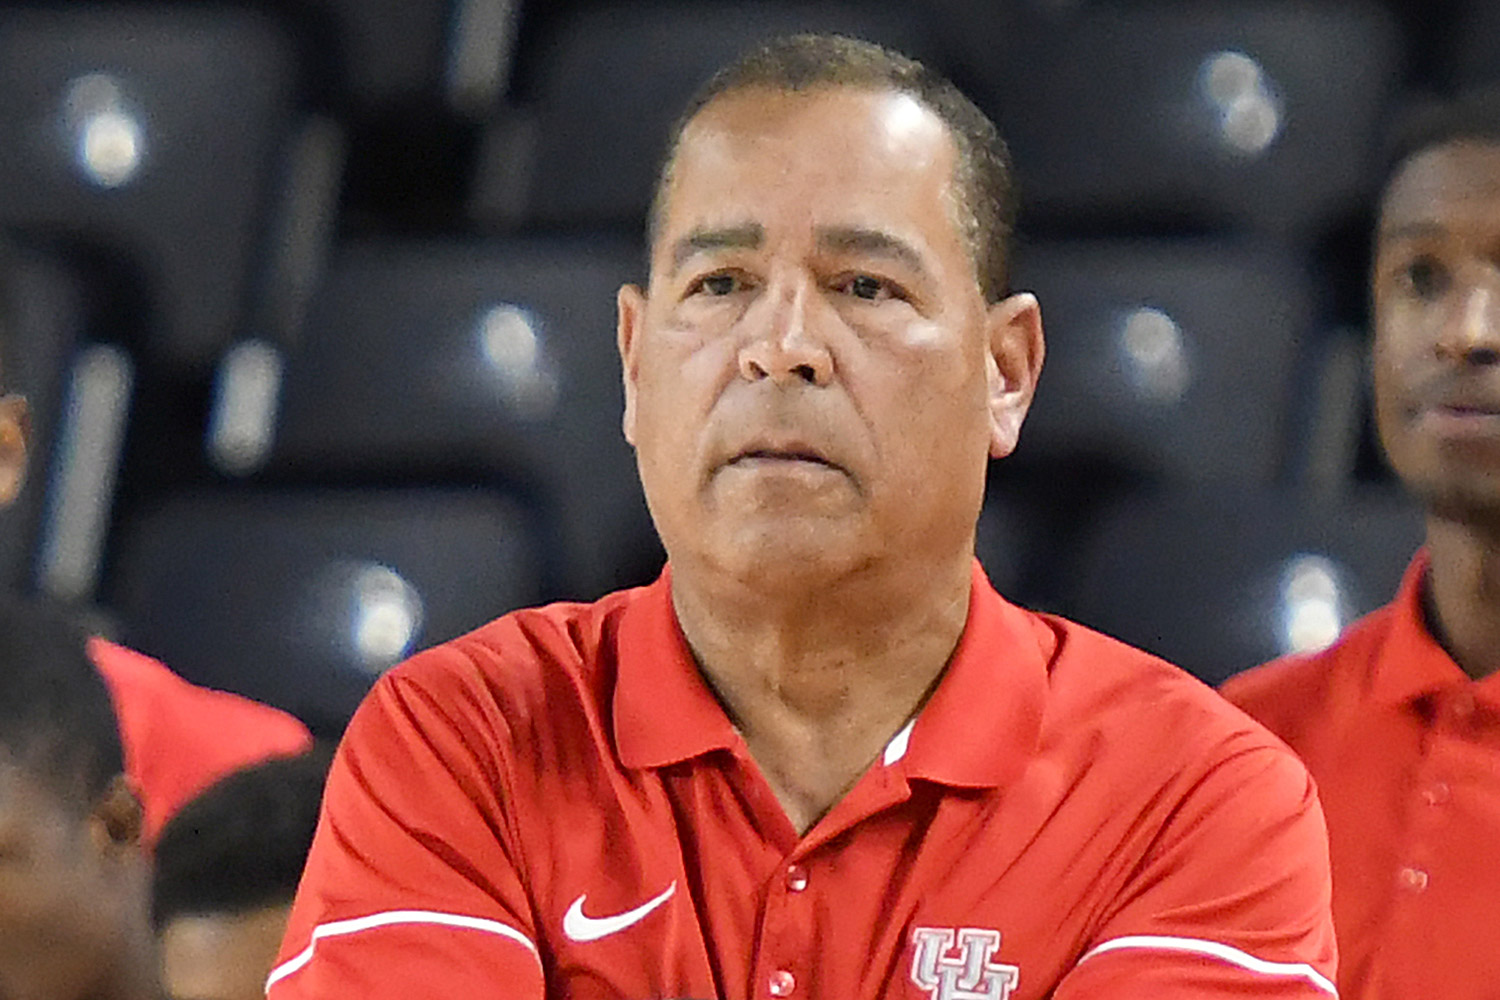 Final Four Coach Kelvin Sampson Shares Emotional Story About His Dad Running the KKK Out of Town